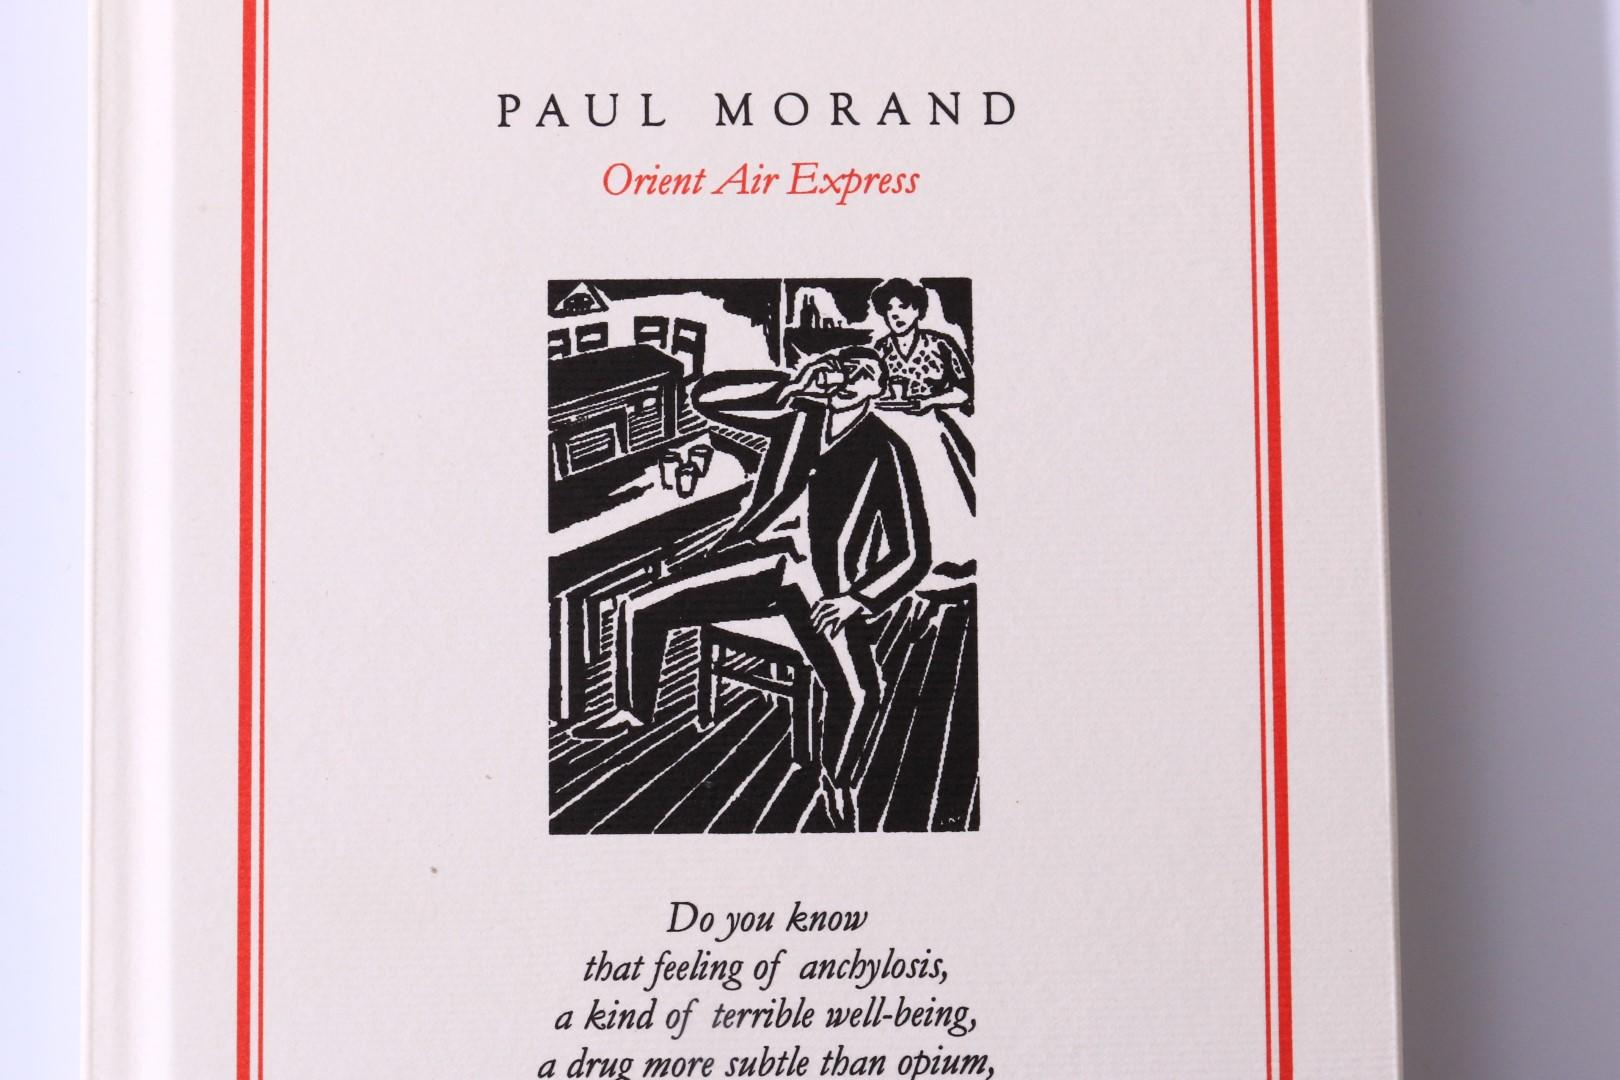 Paul Morand - Orient Air Express - Mount Abraxas, 2018, Limited Edition.